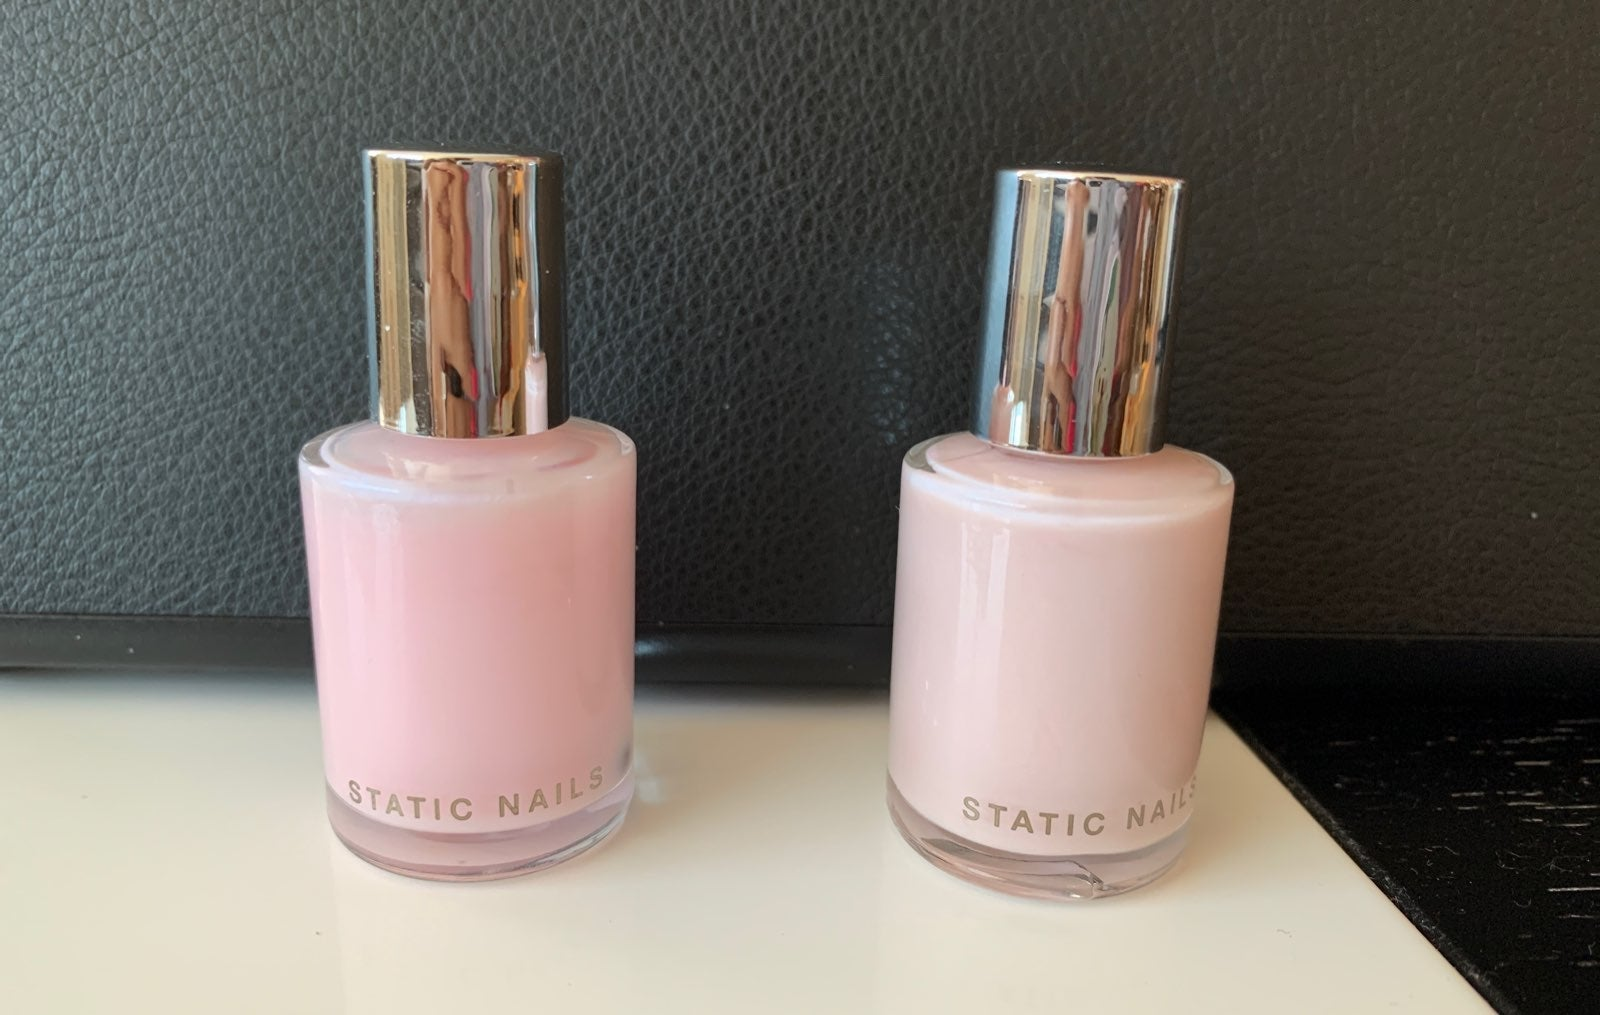 STATIC NAILS ballerina and milky pink